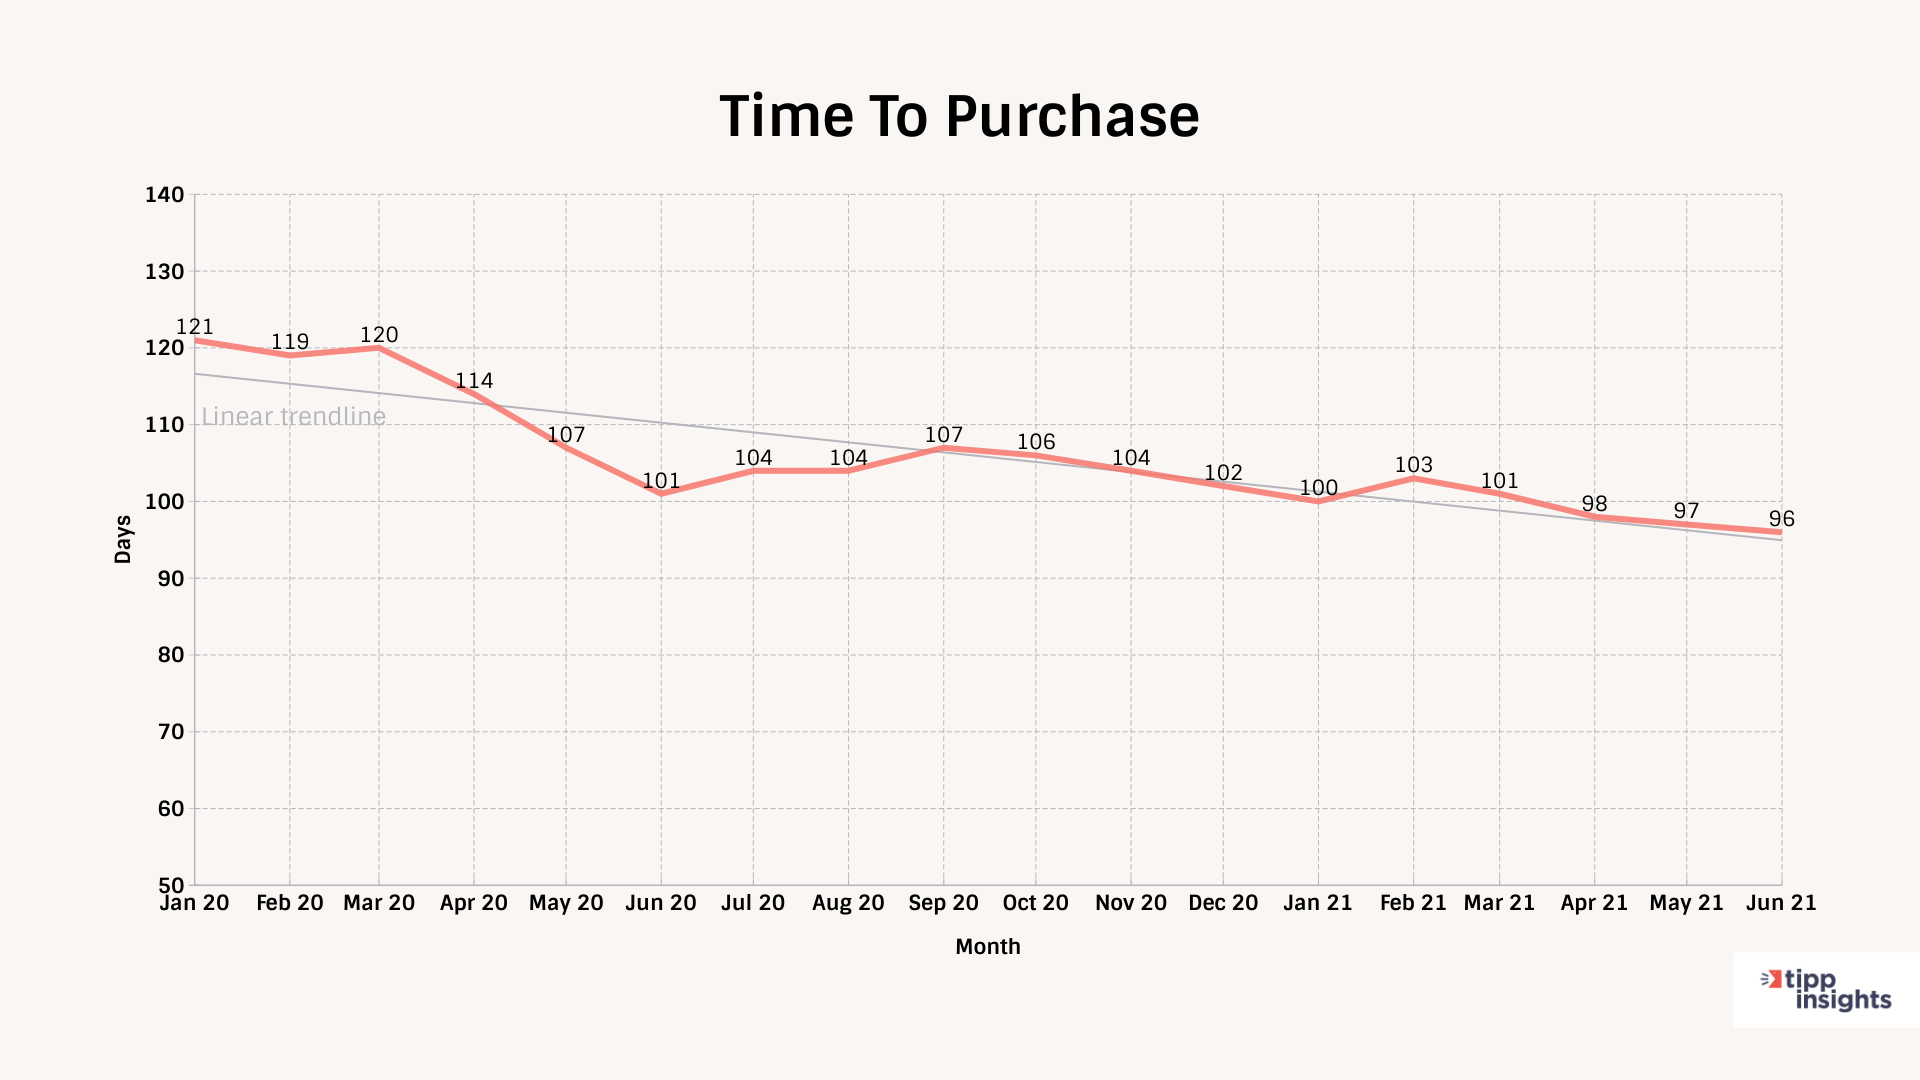 TIPP Poll Automotive Index Time To Purchase Tracking Chart